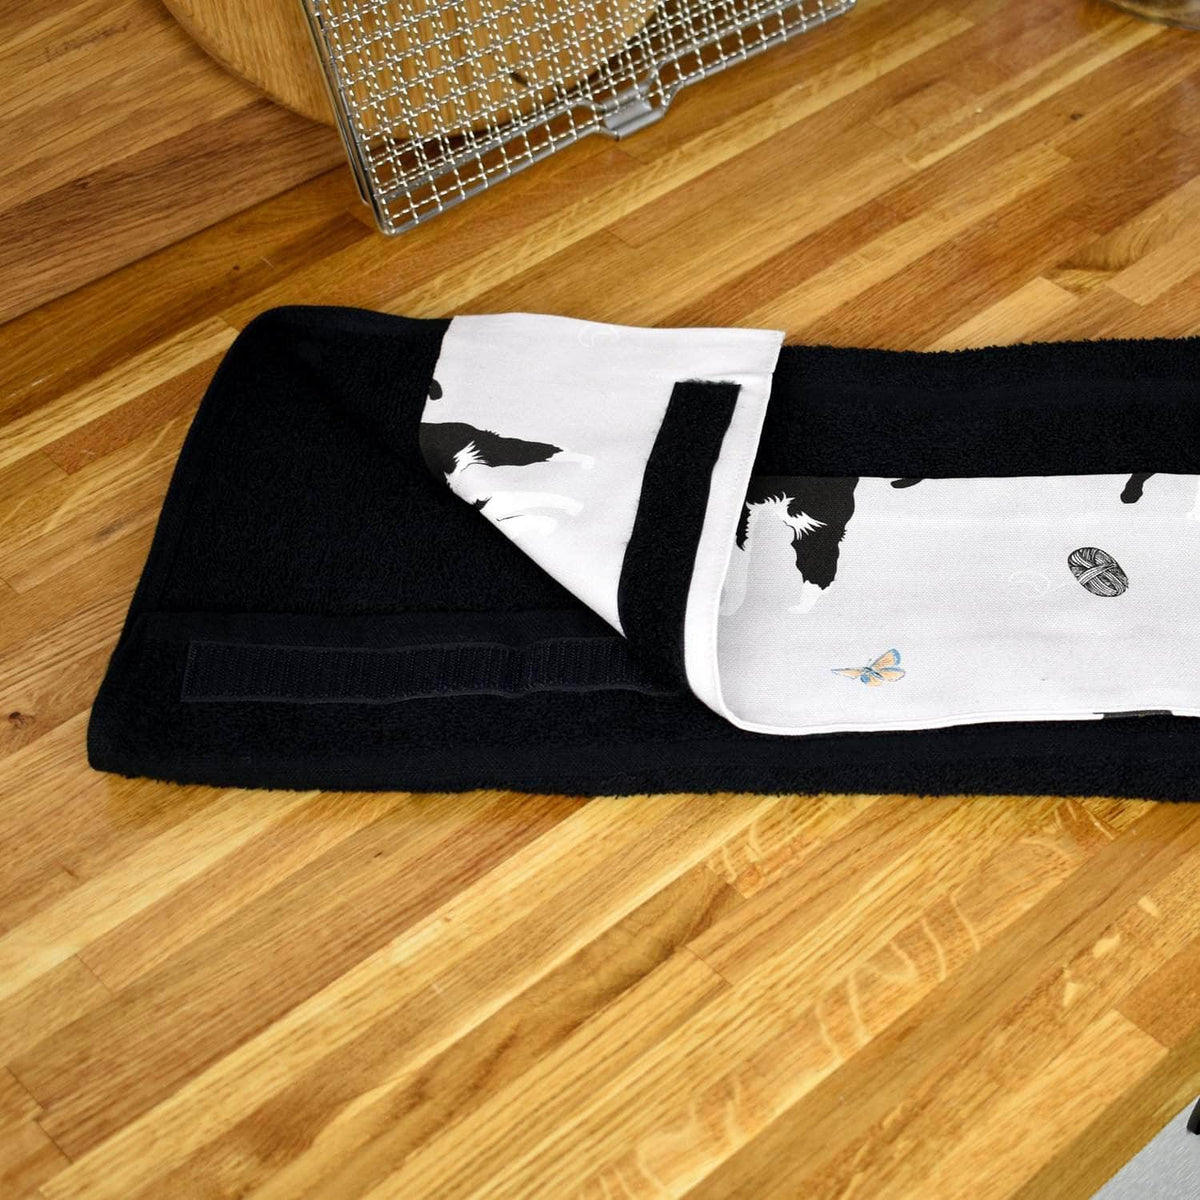 *New* Narrow (32 cm) hanging towel with velcro attachment - 'Cats'